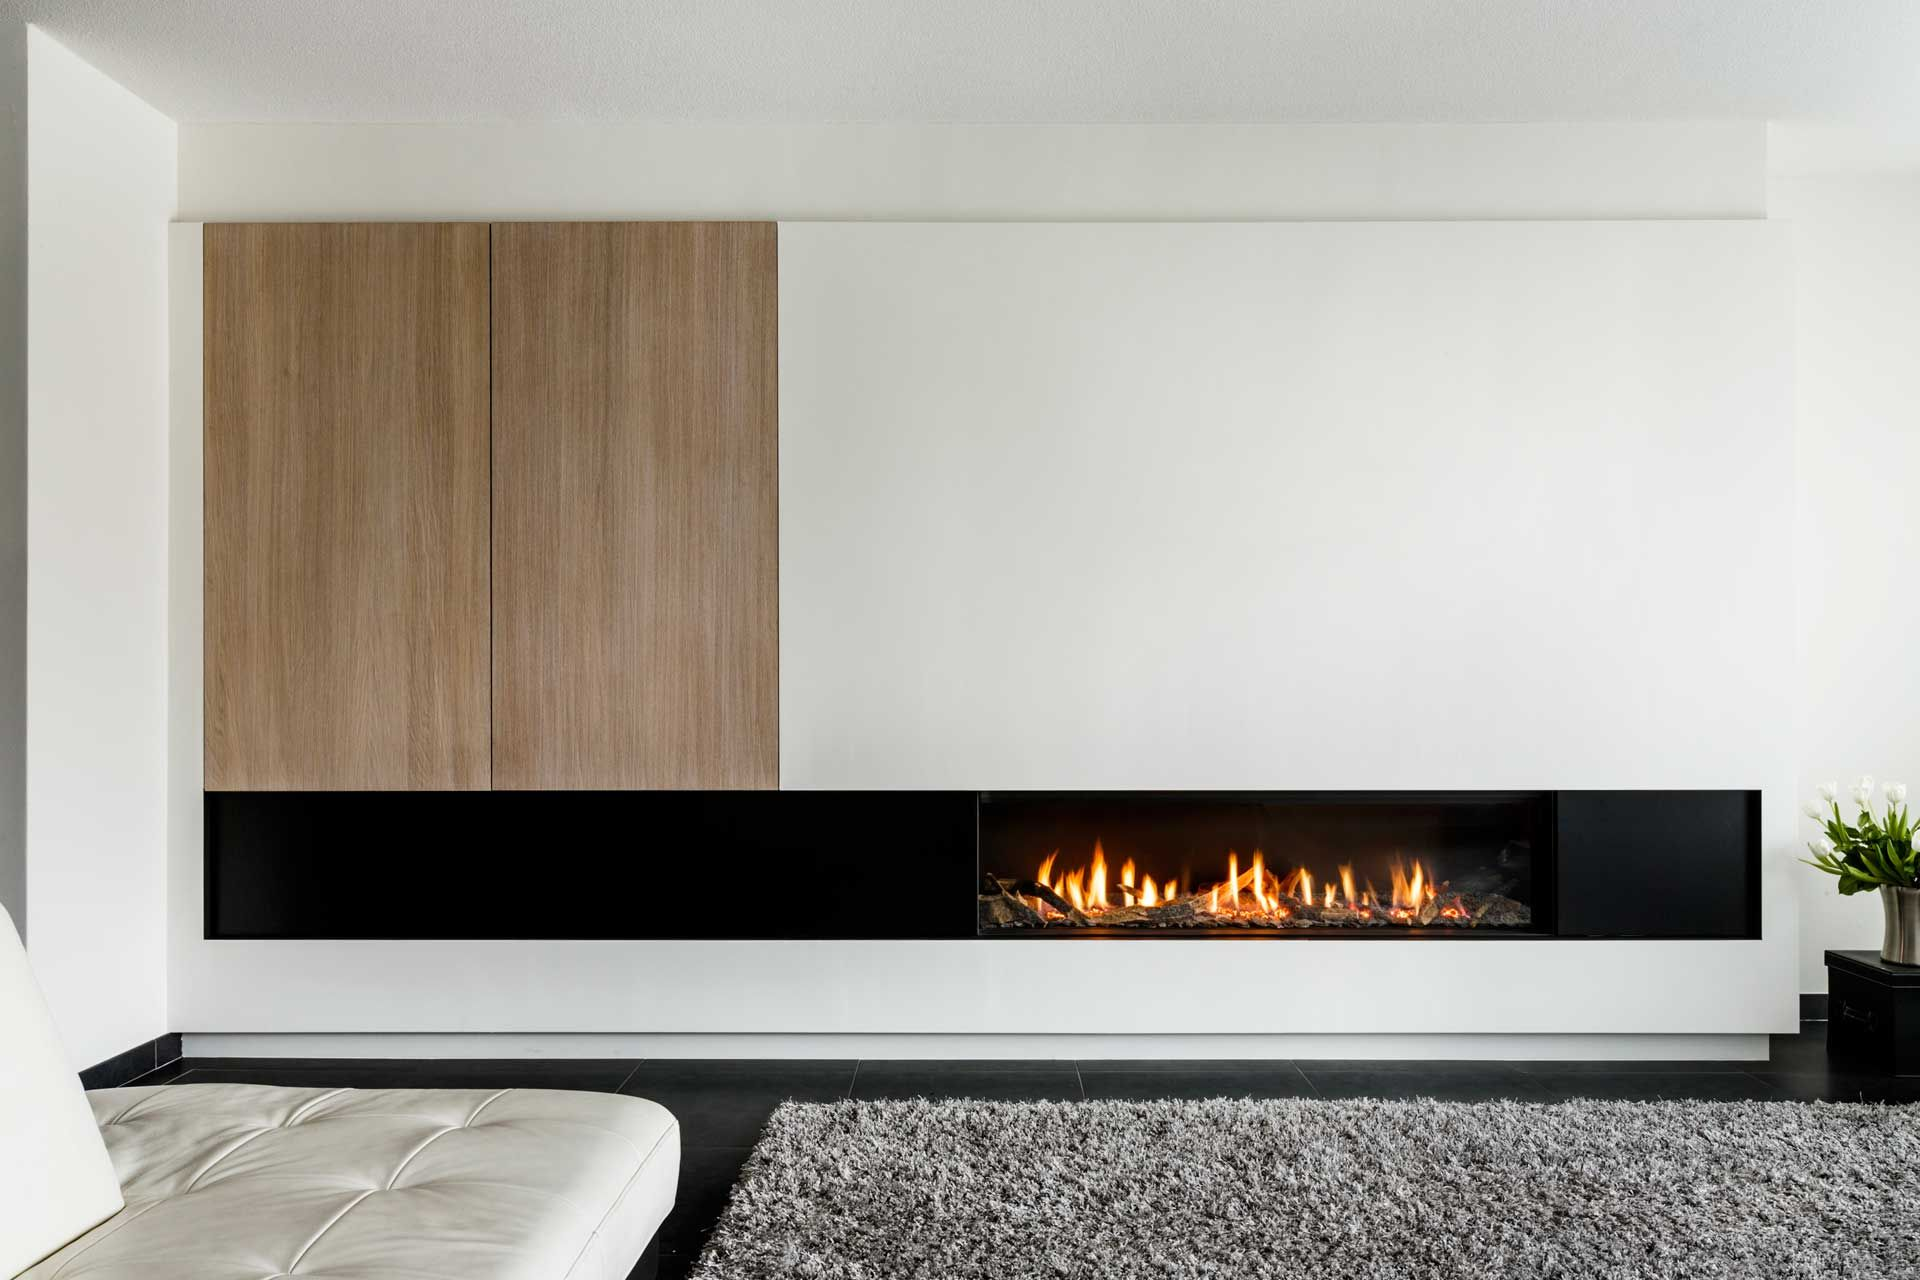 Extra Long Linear Fireplace With Mixed Materials Perfect